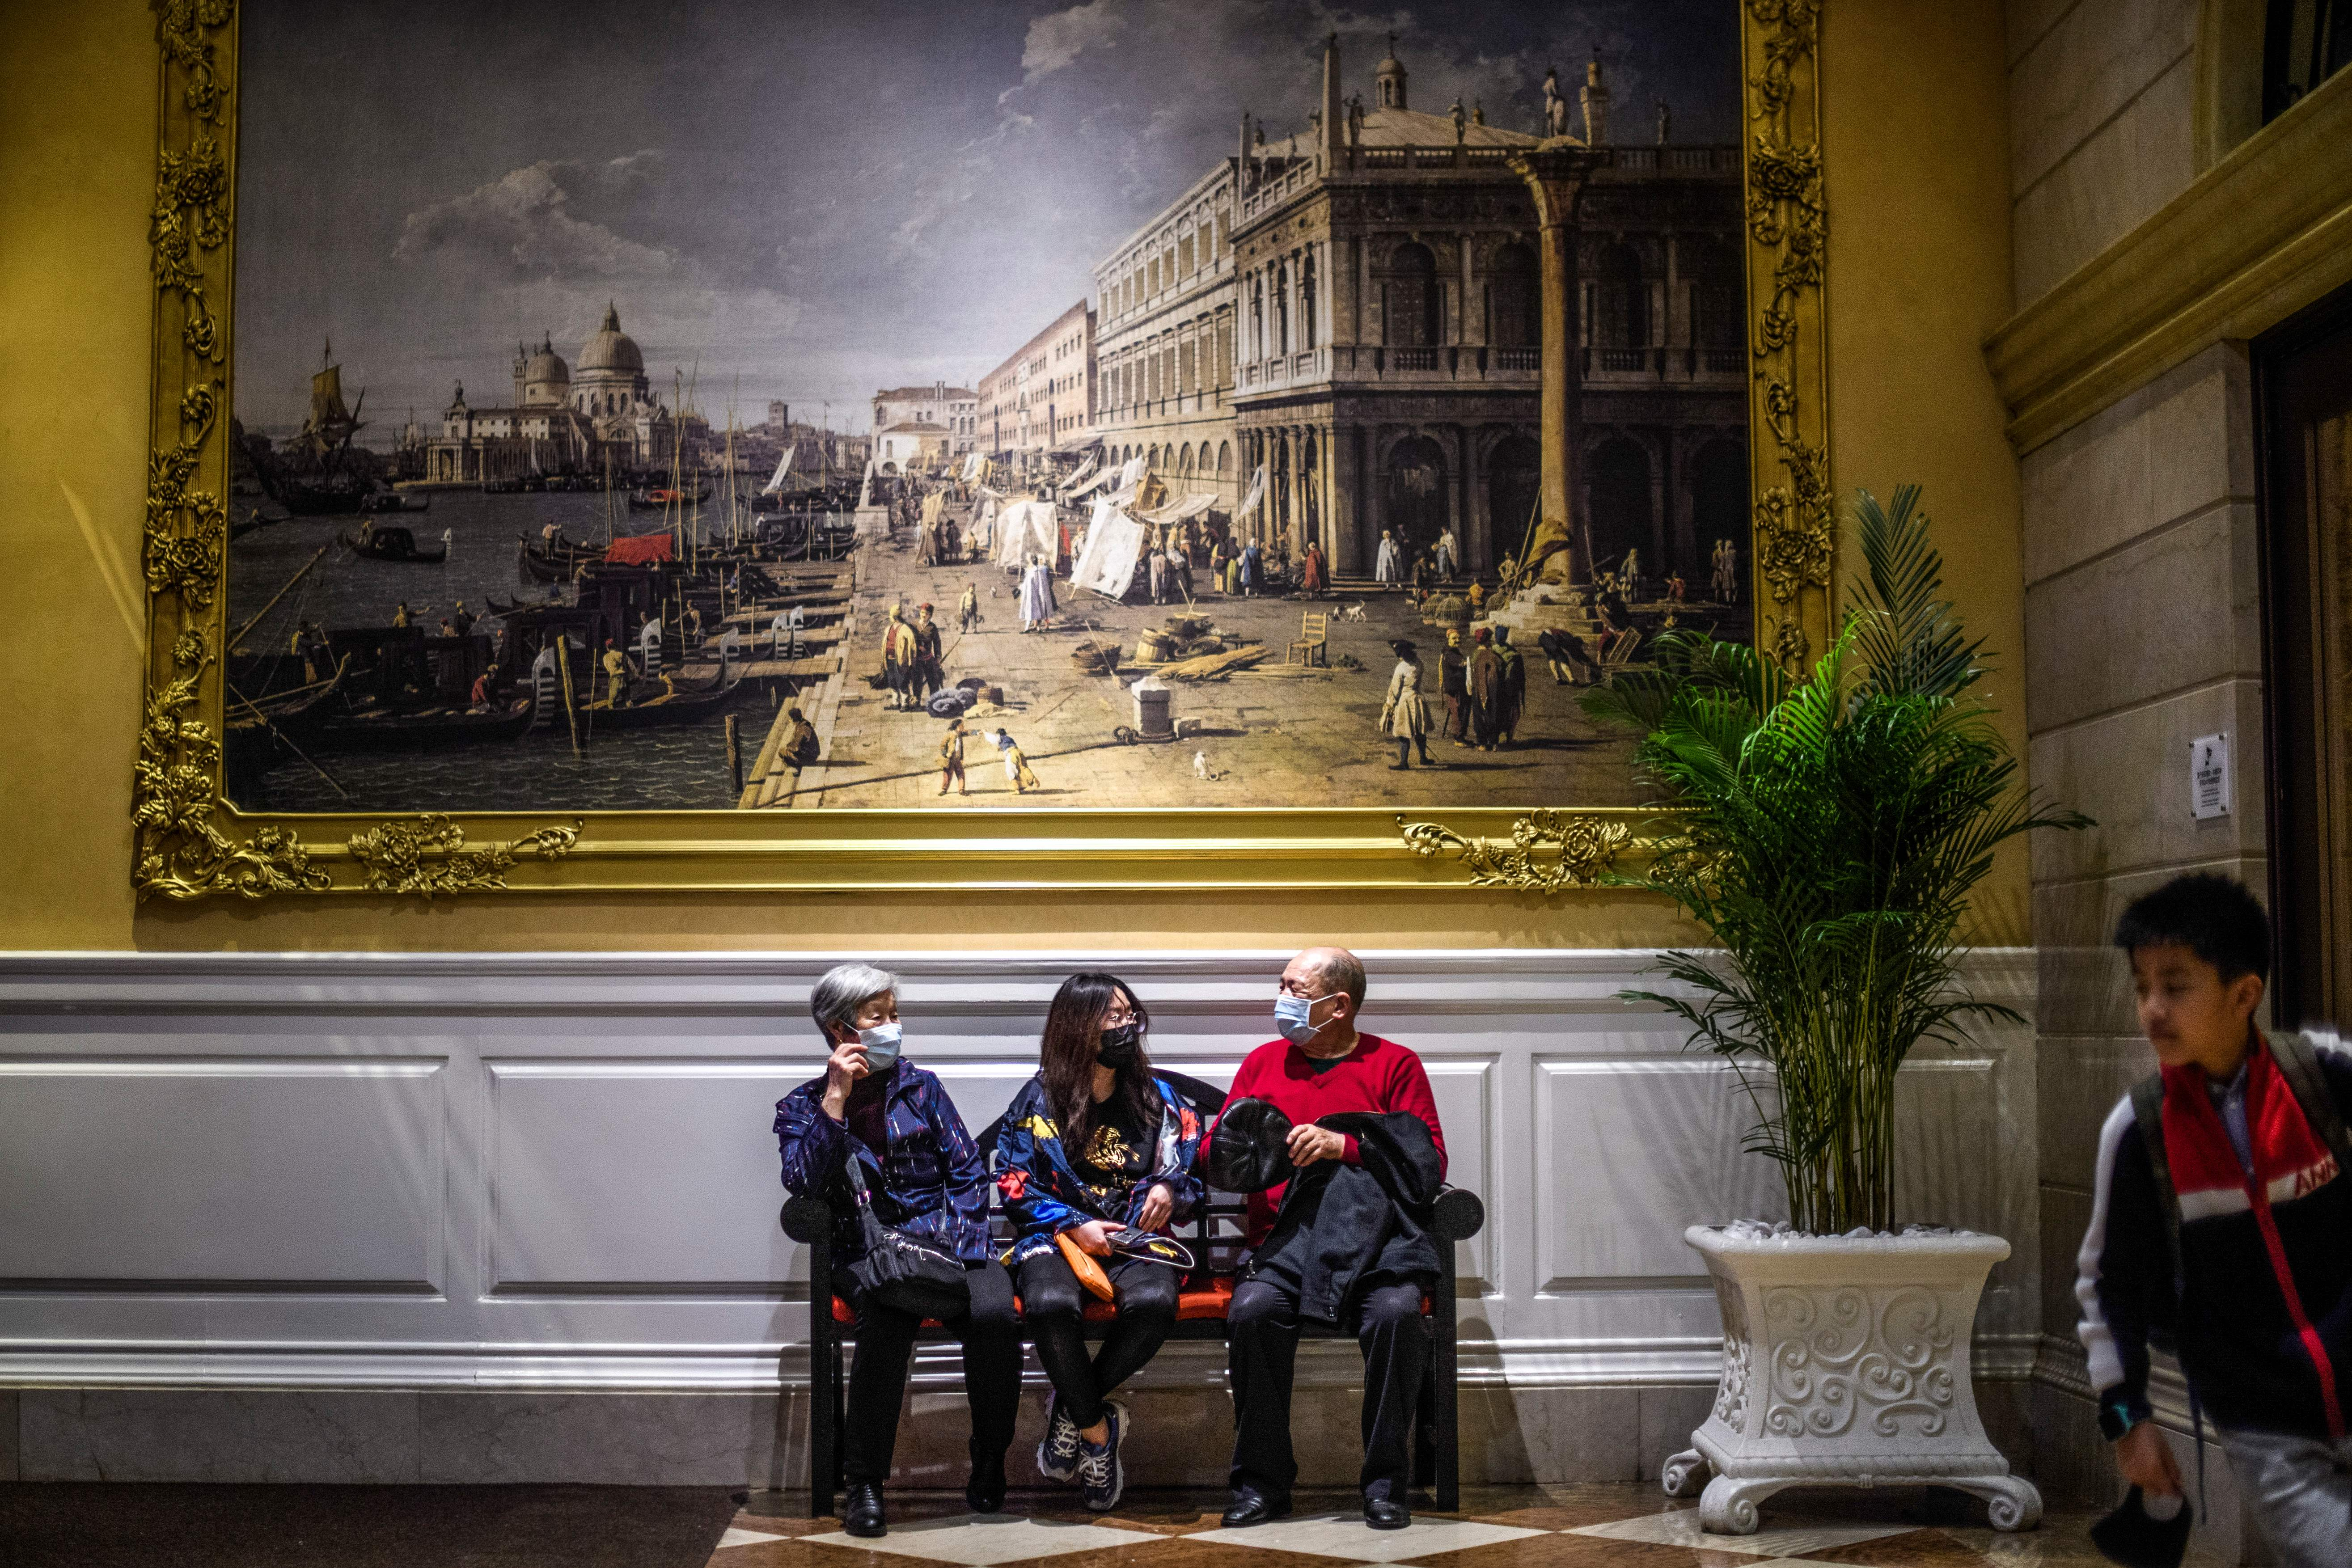 Visitors wear face masks as they sit inside the Venetian casino hotel resort in Macao on January 22.